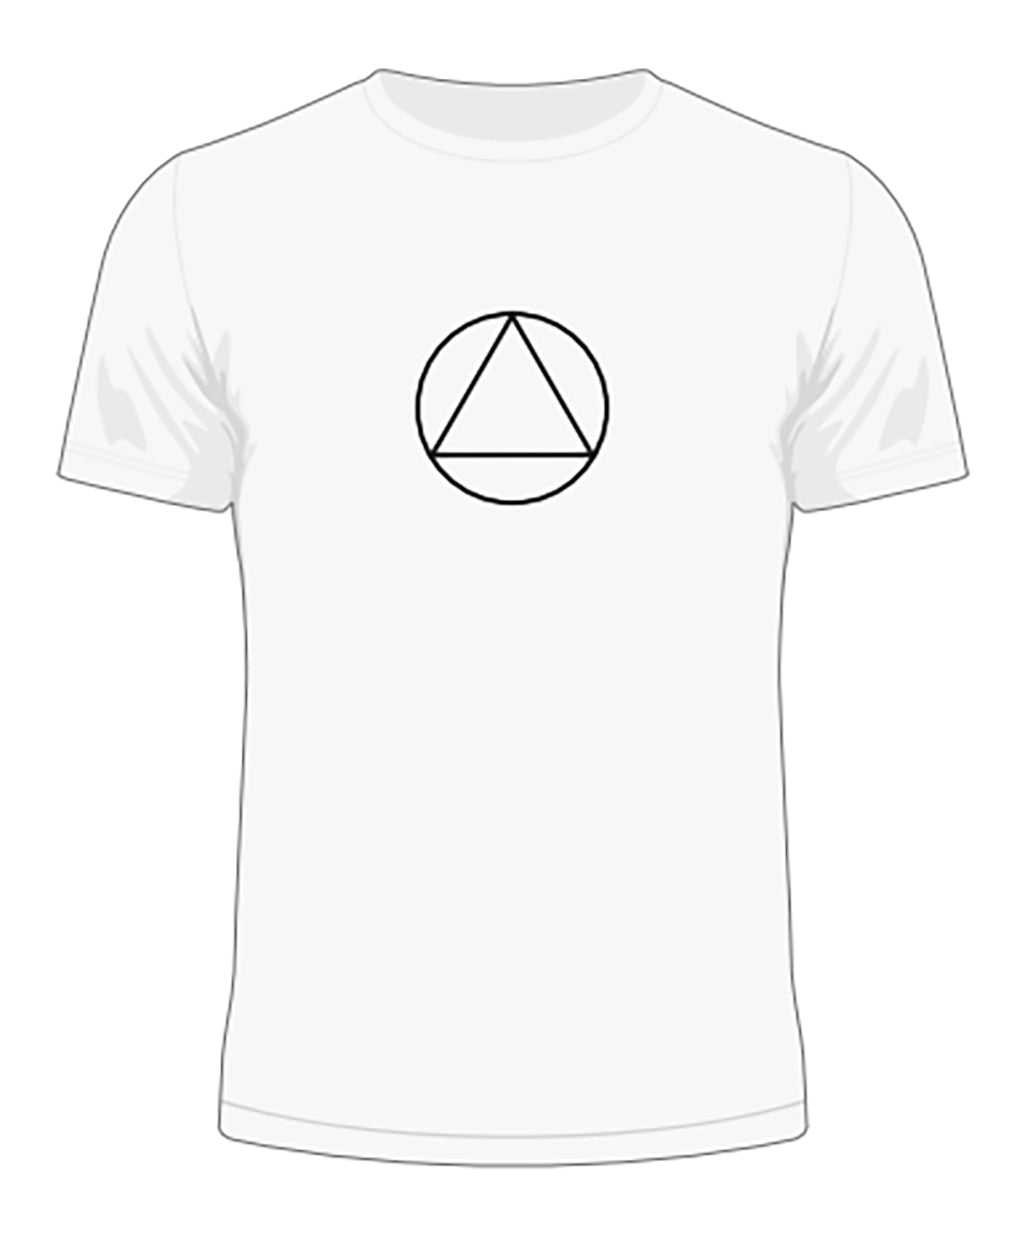 AA Circle/Triangle T-Shirt